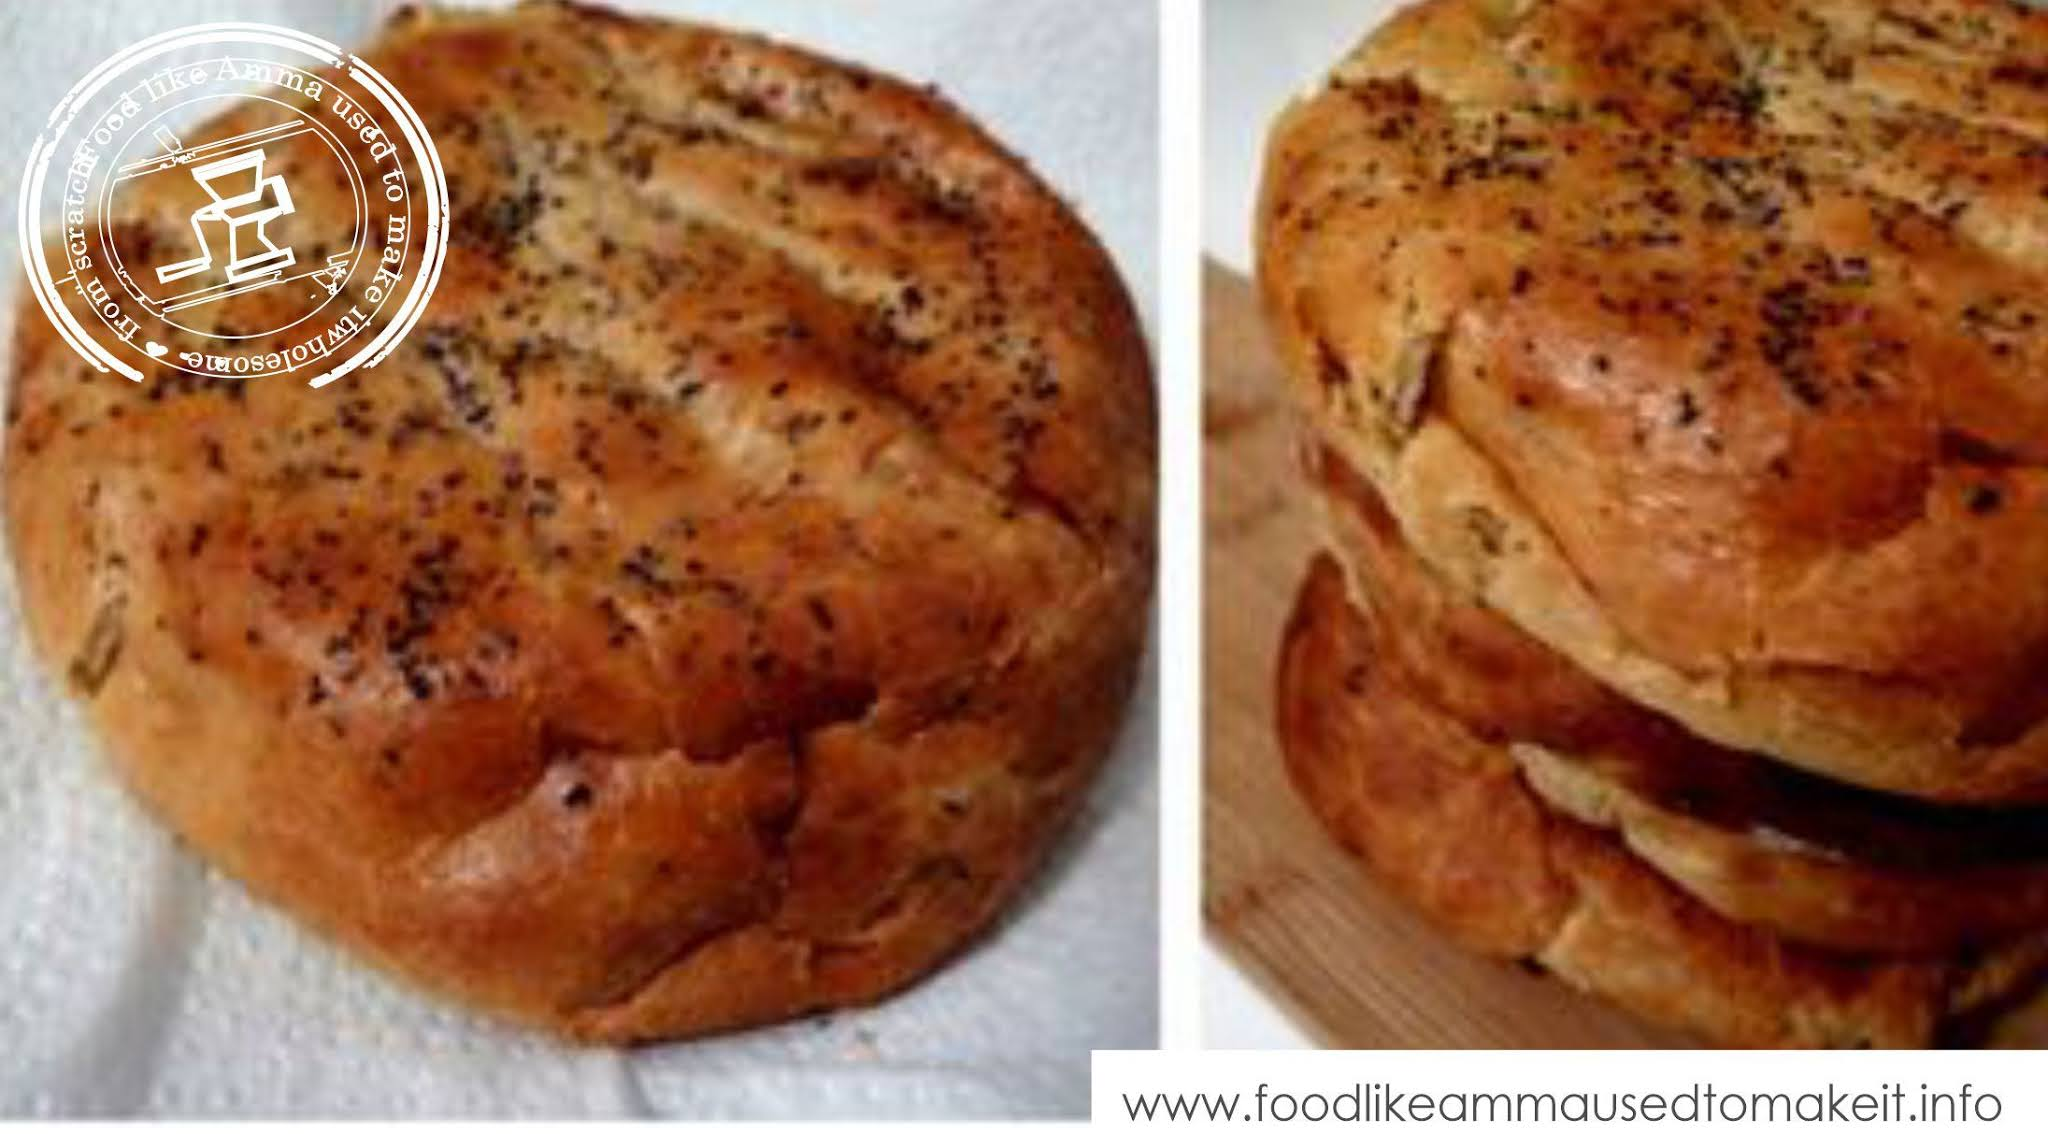 Durban naan bread recipe